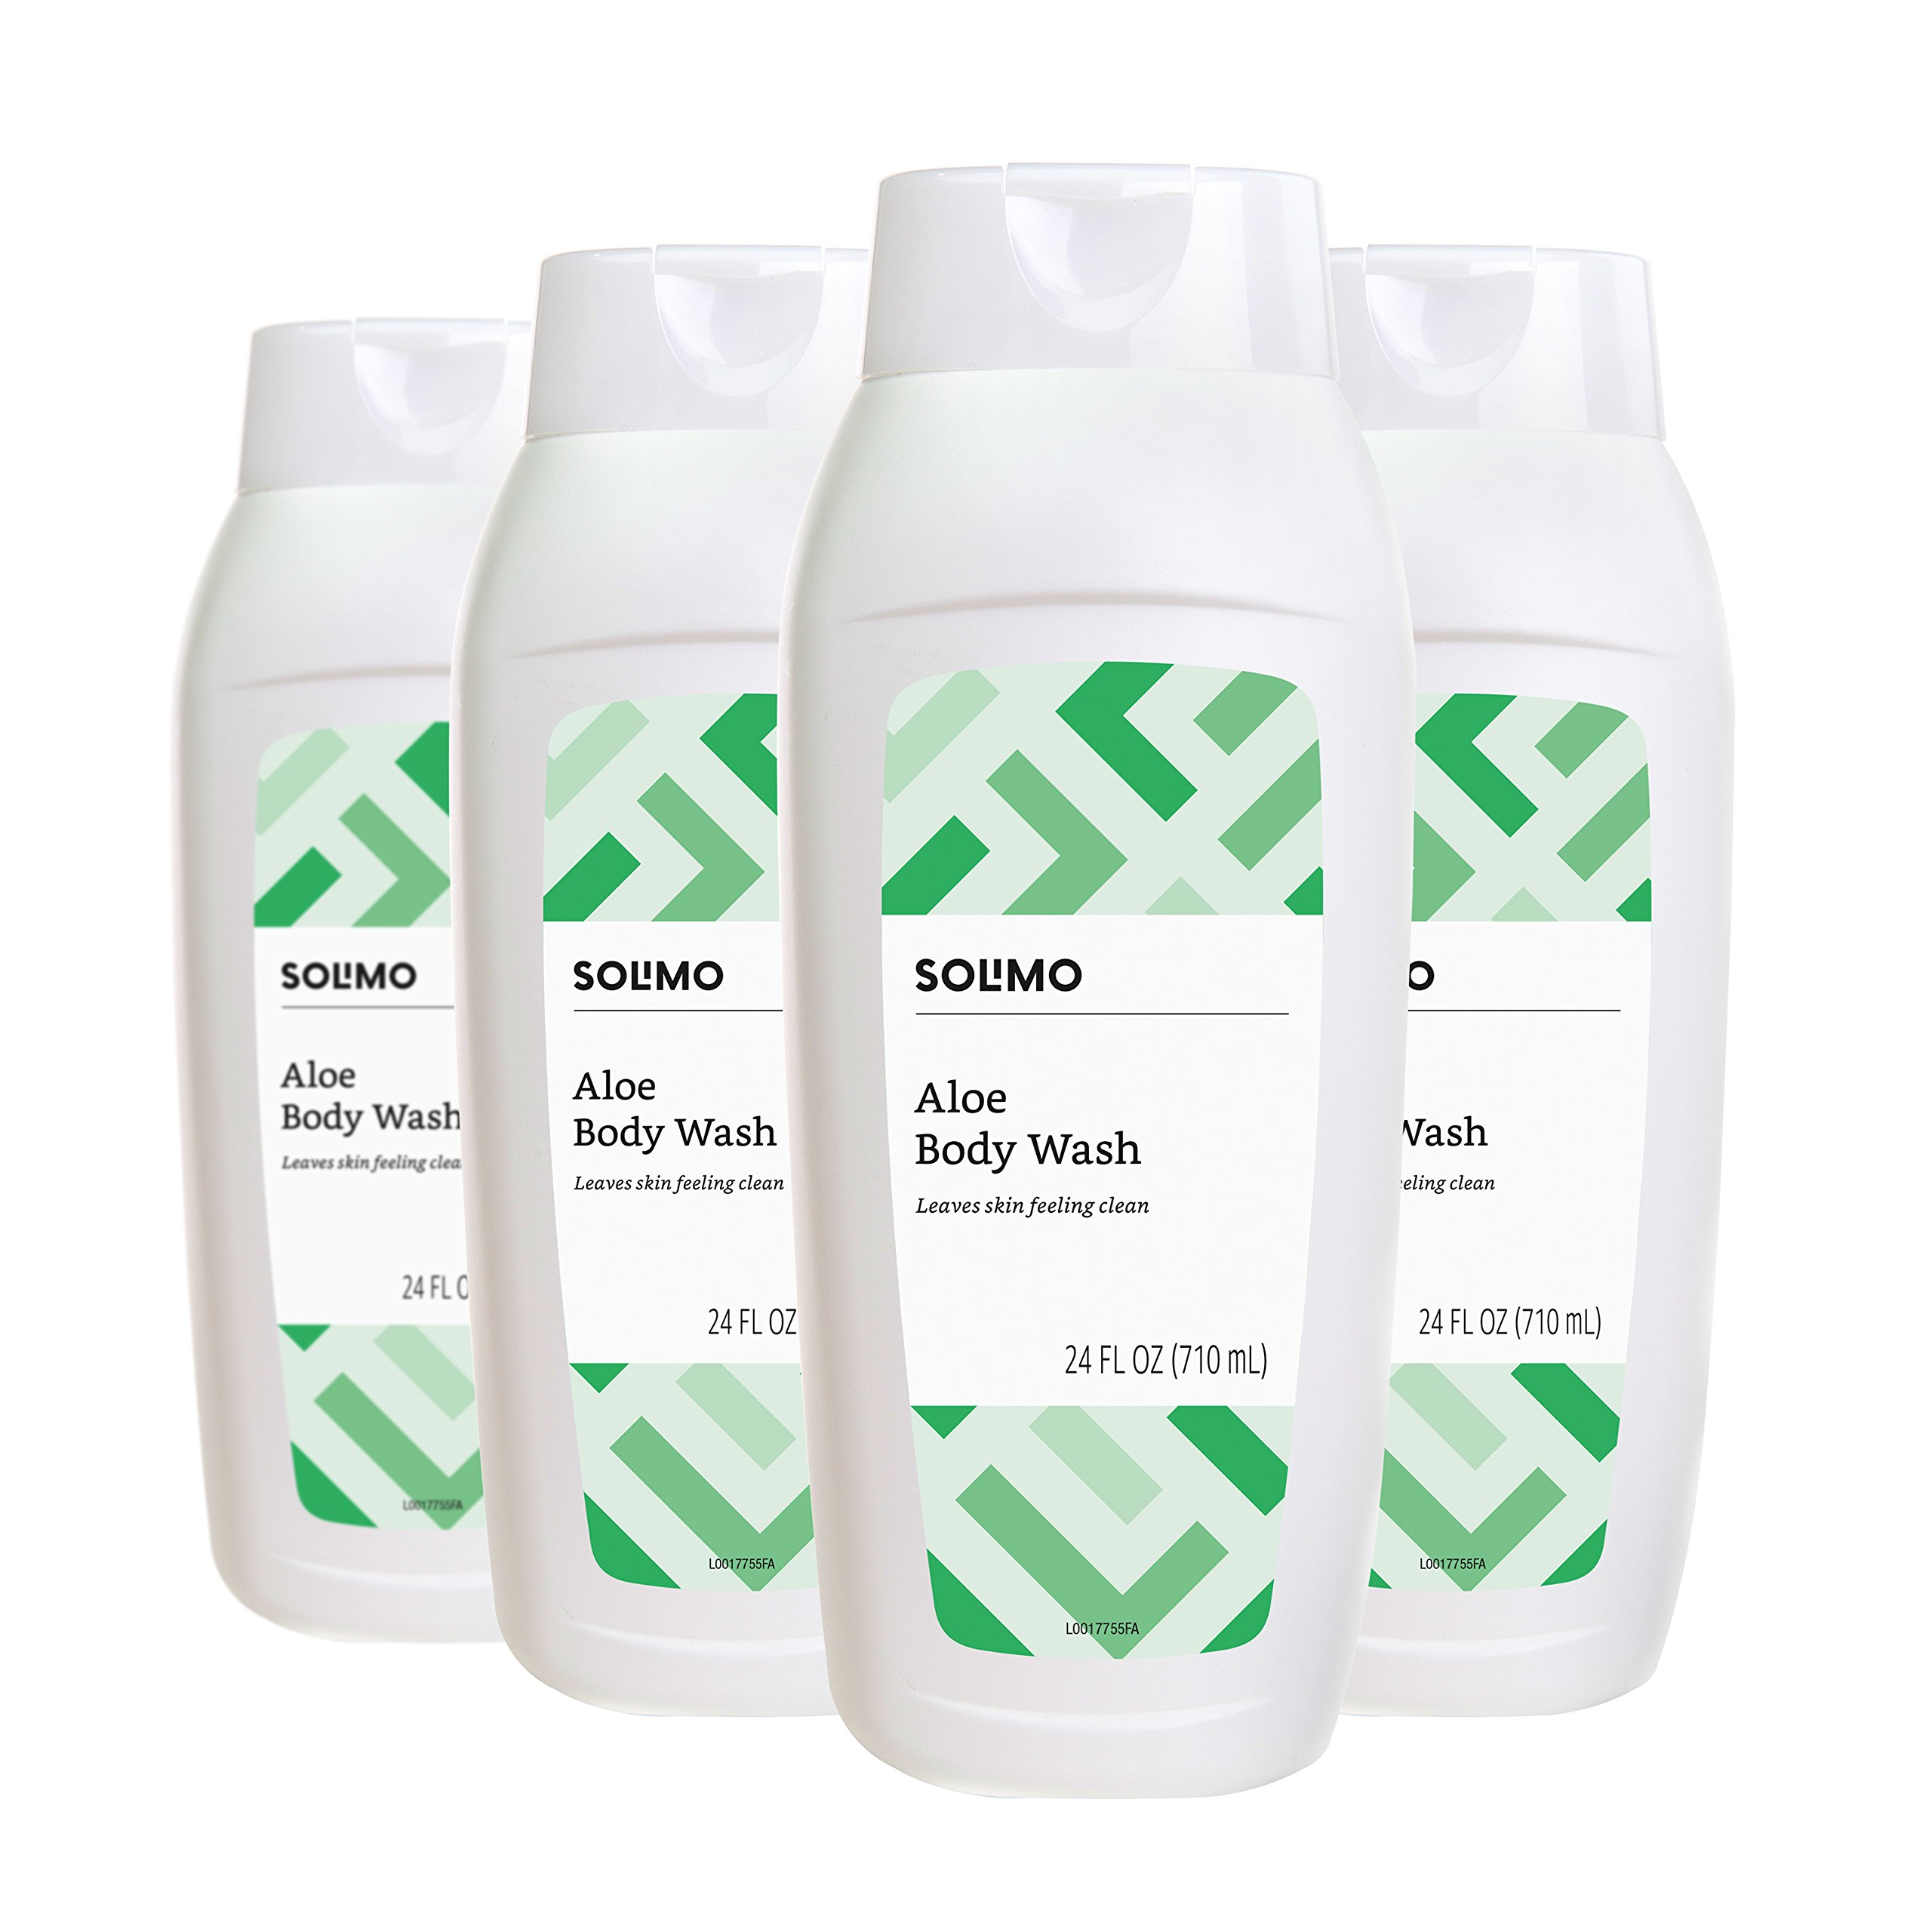 Amazon Brand - Solimo Aloe Body Wash, 24 Fluid Ounce (Pack of 4)